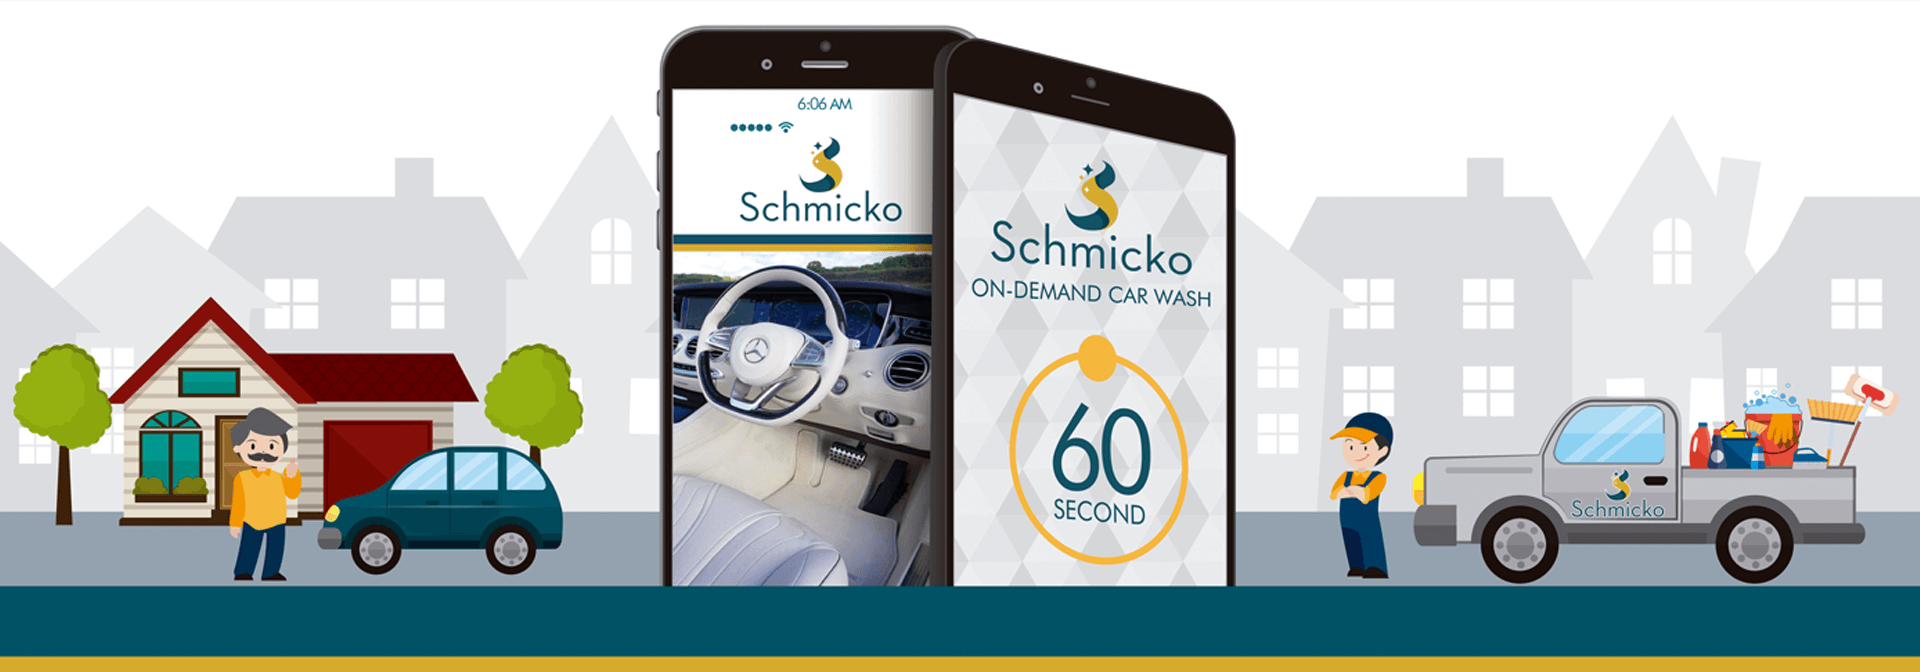 Schmicko On-Demand Car Wash